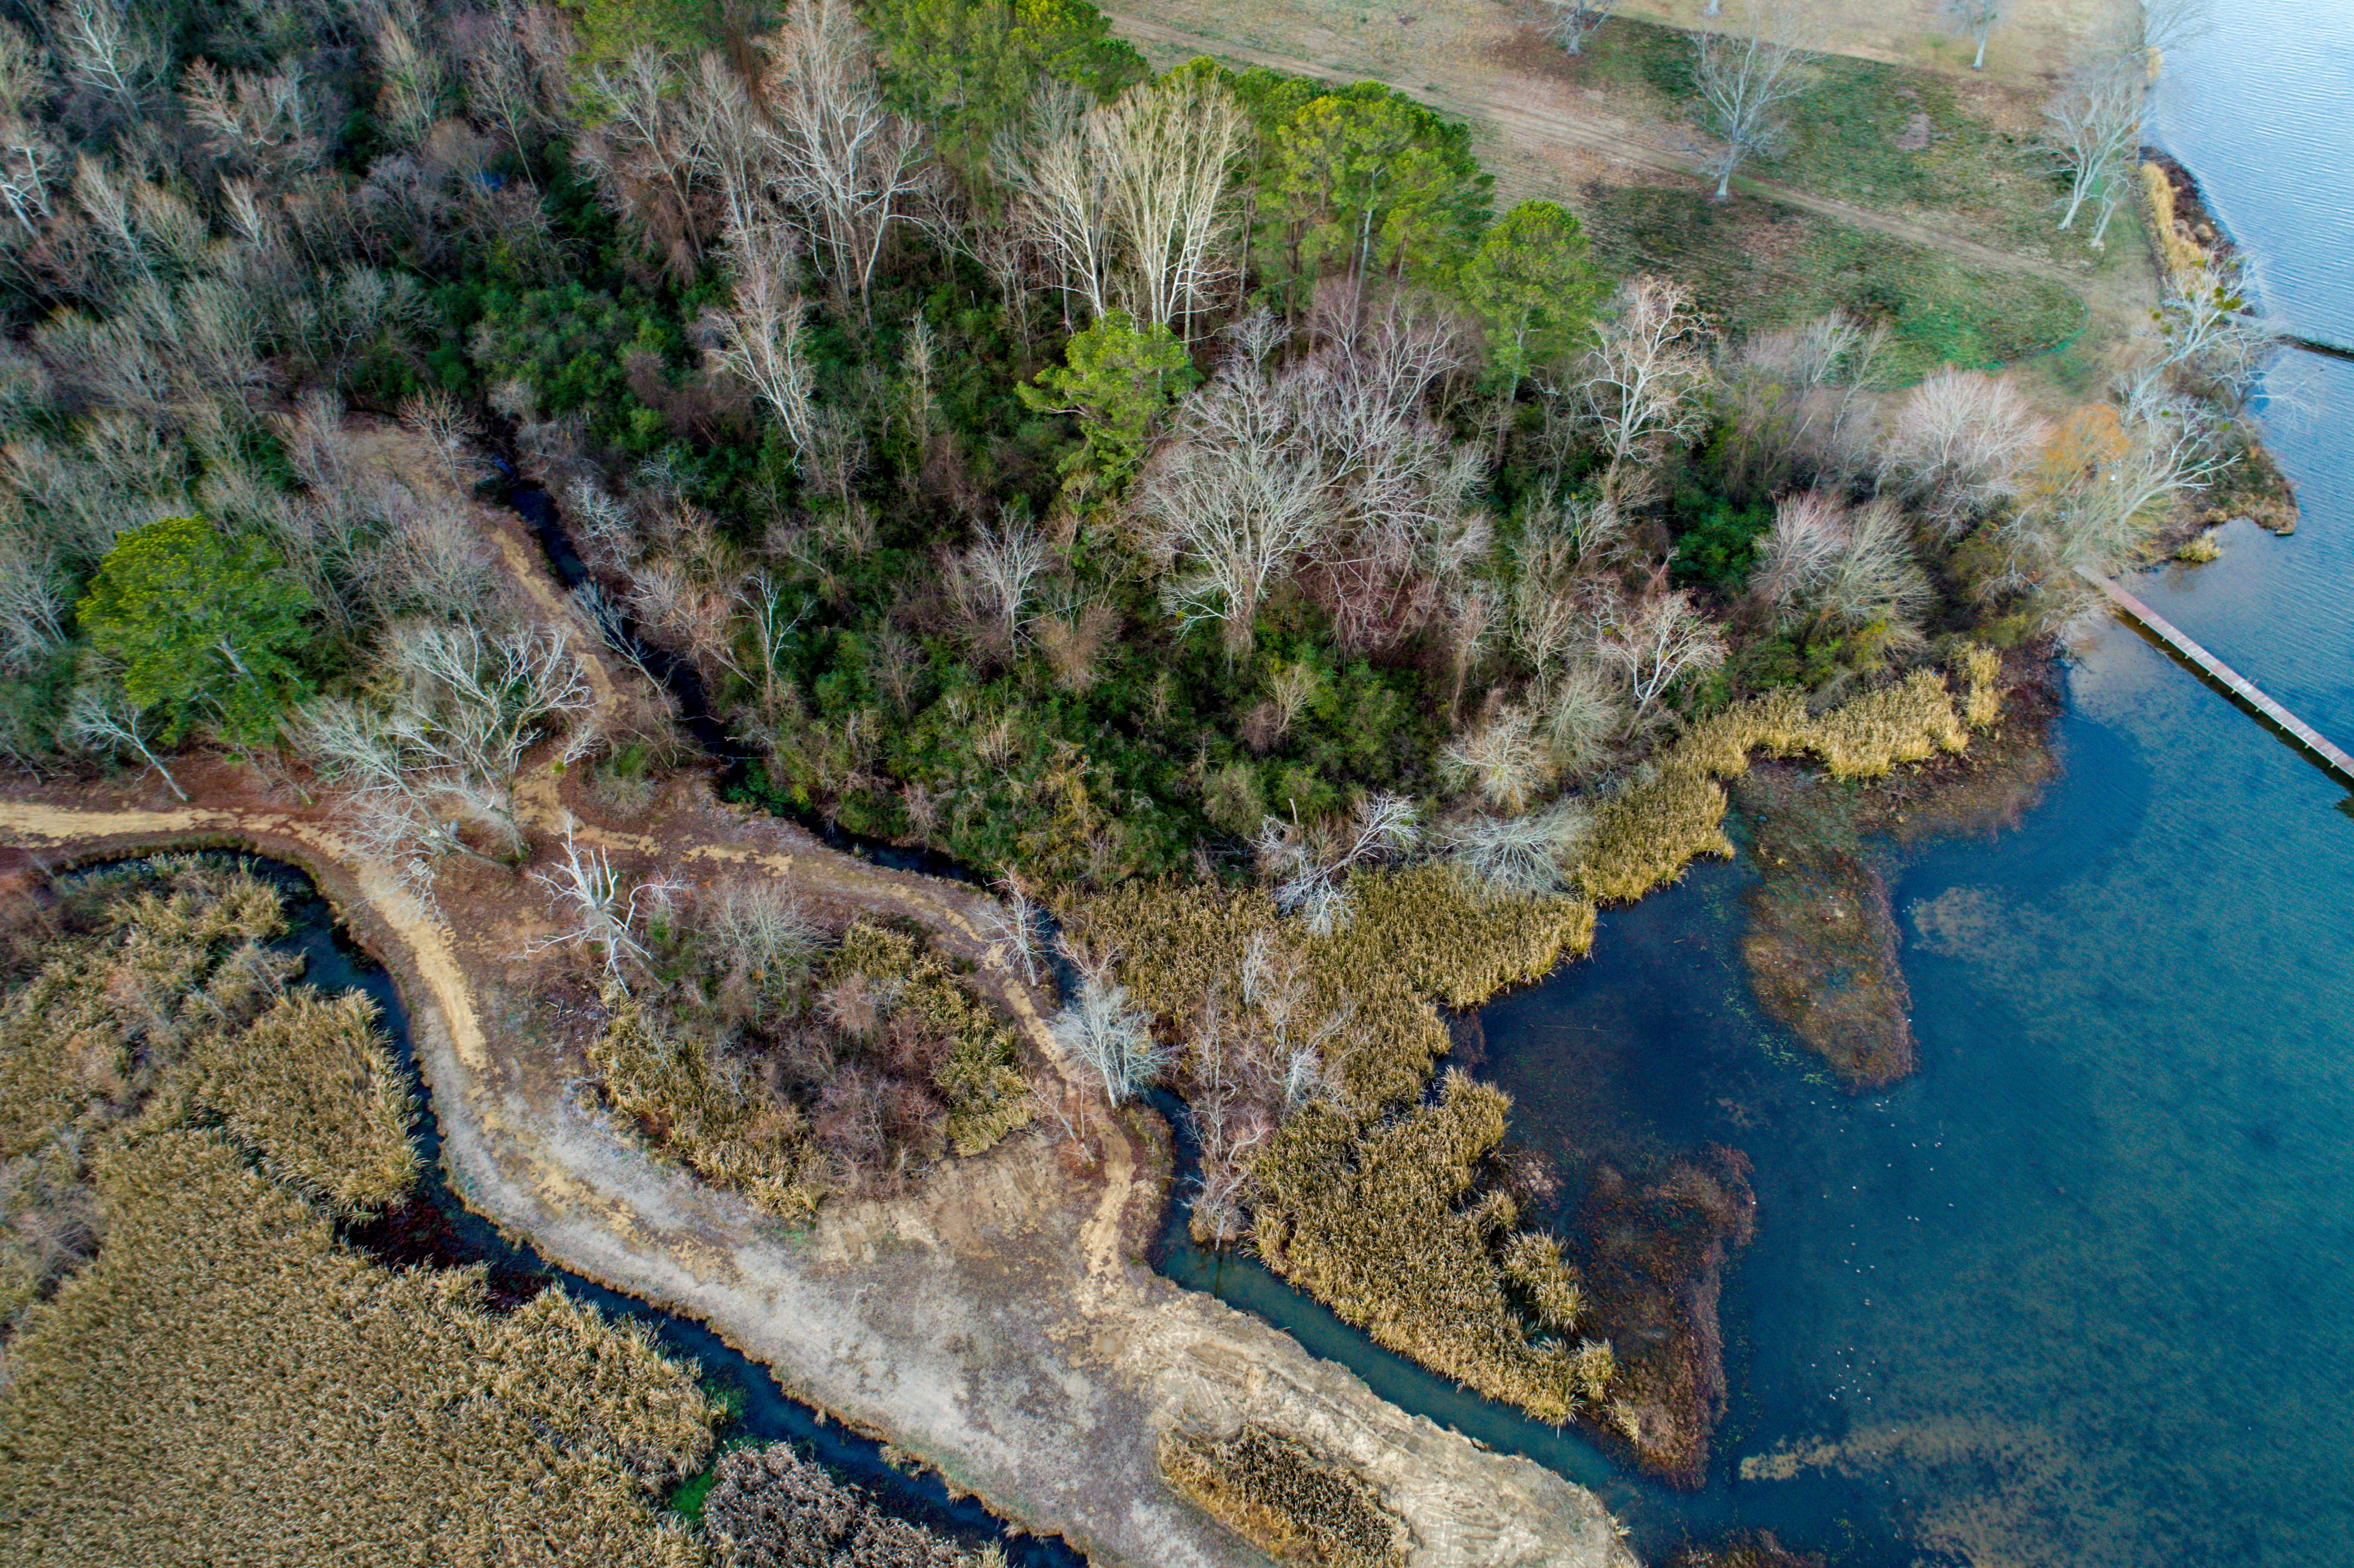 A drone shot of a picturesque stretch of forest near a lake in Guntersville, Alabama